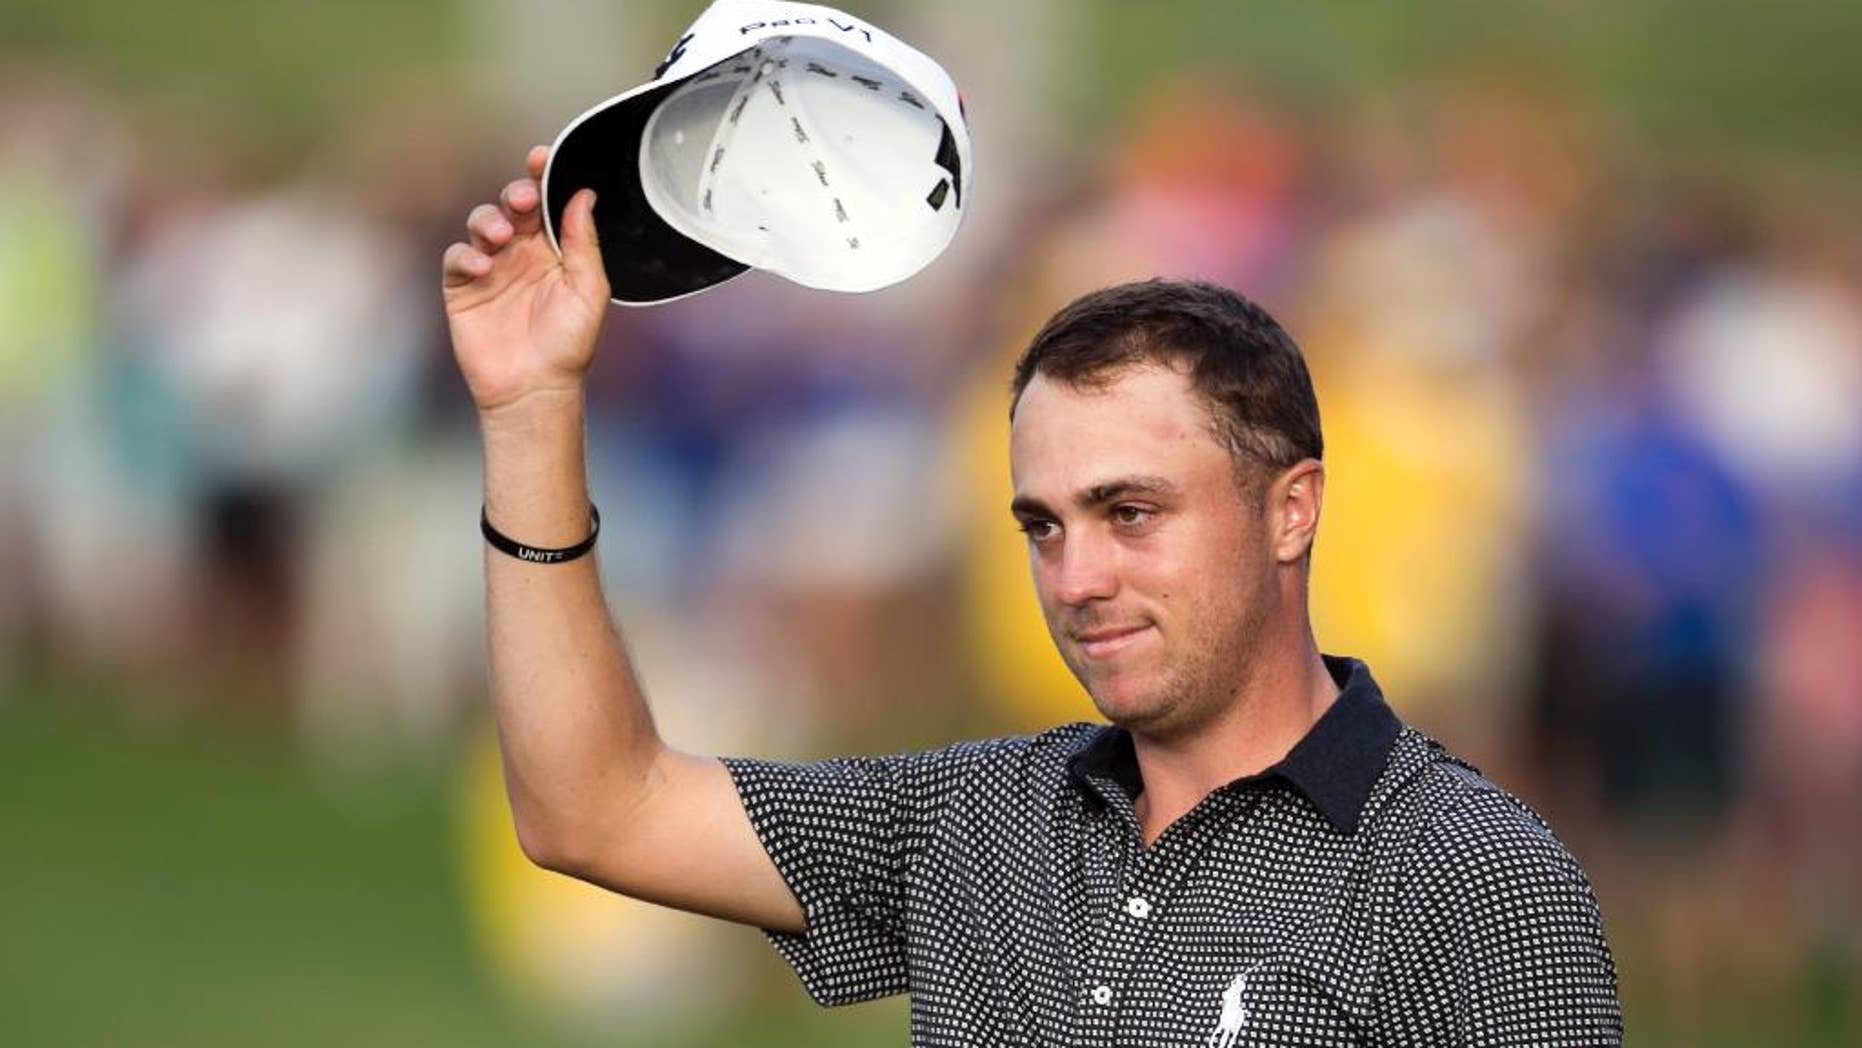 FILE - In this Jan. 15, 2017, file photo, Justin Thomas acknowledges to the gallery after winning the Sony Open golf tournament in Honolulu. Thomas is set to play in the Waste Management Phoenix Open this week, coming off a two-break after a dominating Hawaiian sweep. (AP Photo/Marco Garcia, File)